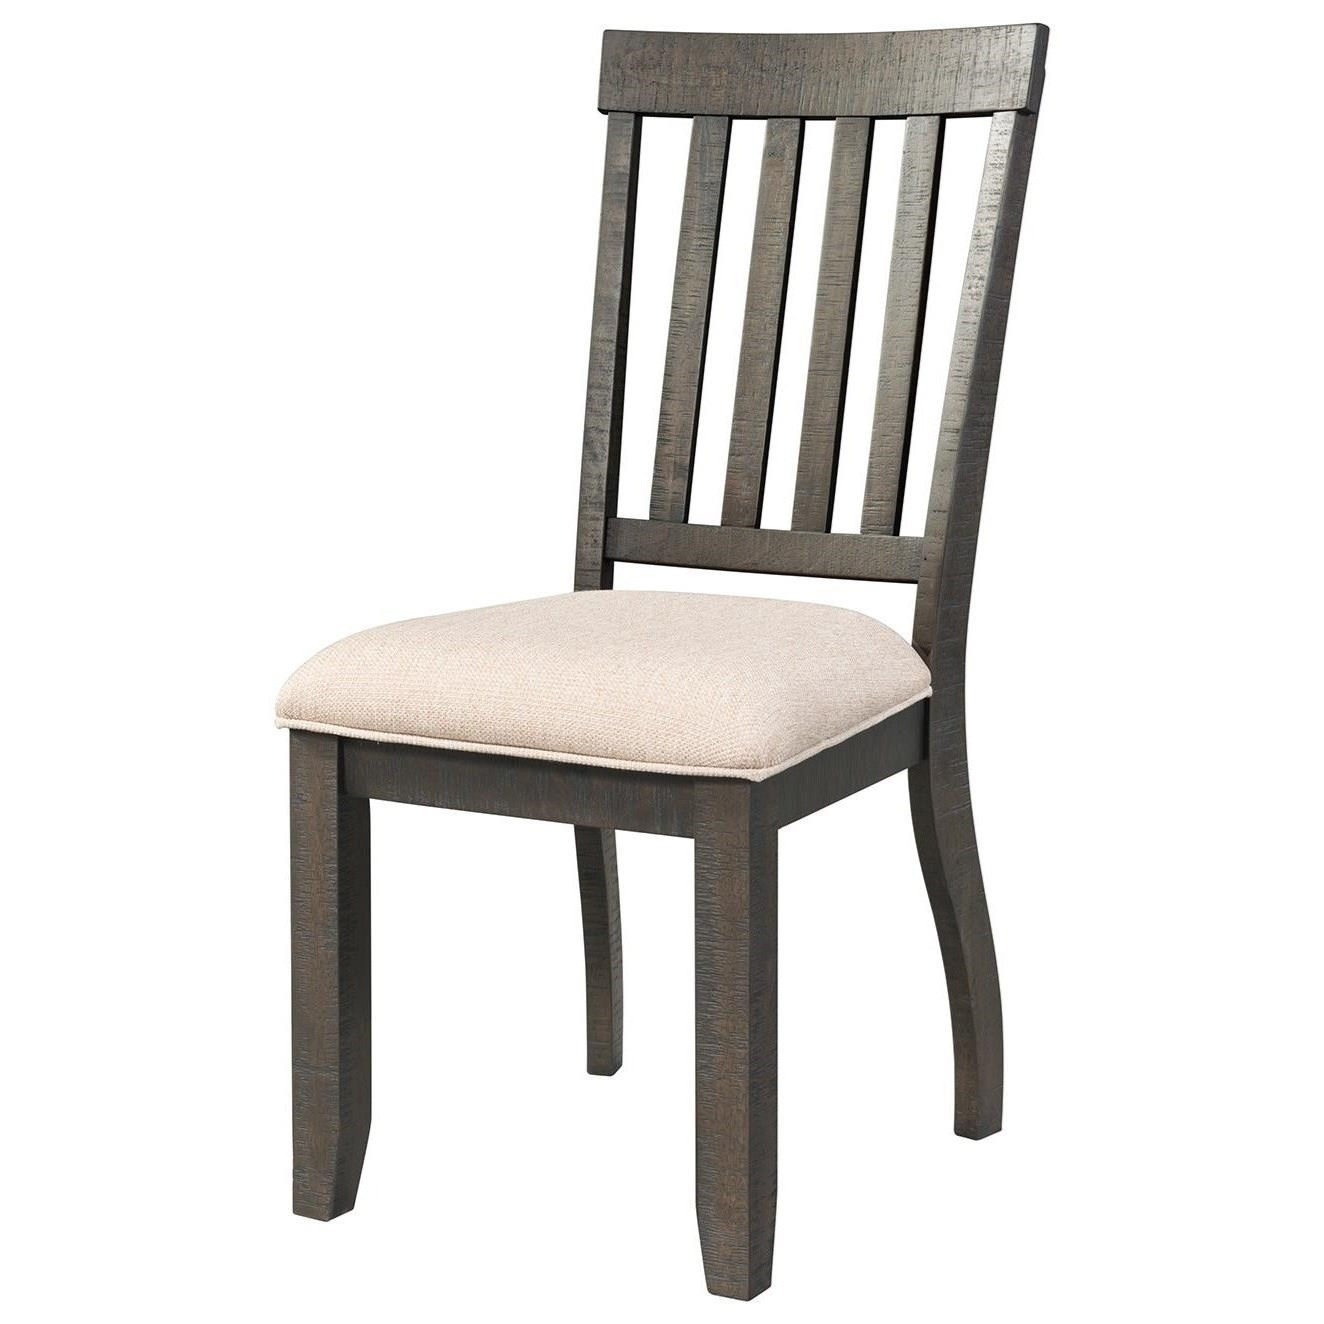 Elements International Stone Slat Back Side Chair   John V Schultz Furniture    Dining Side Chairs